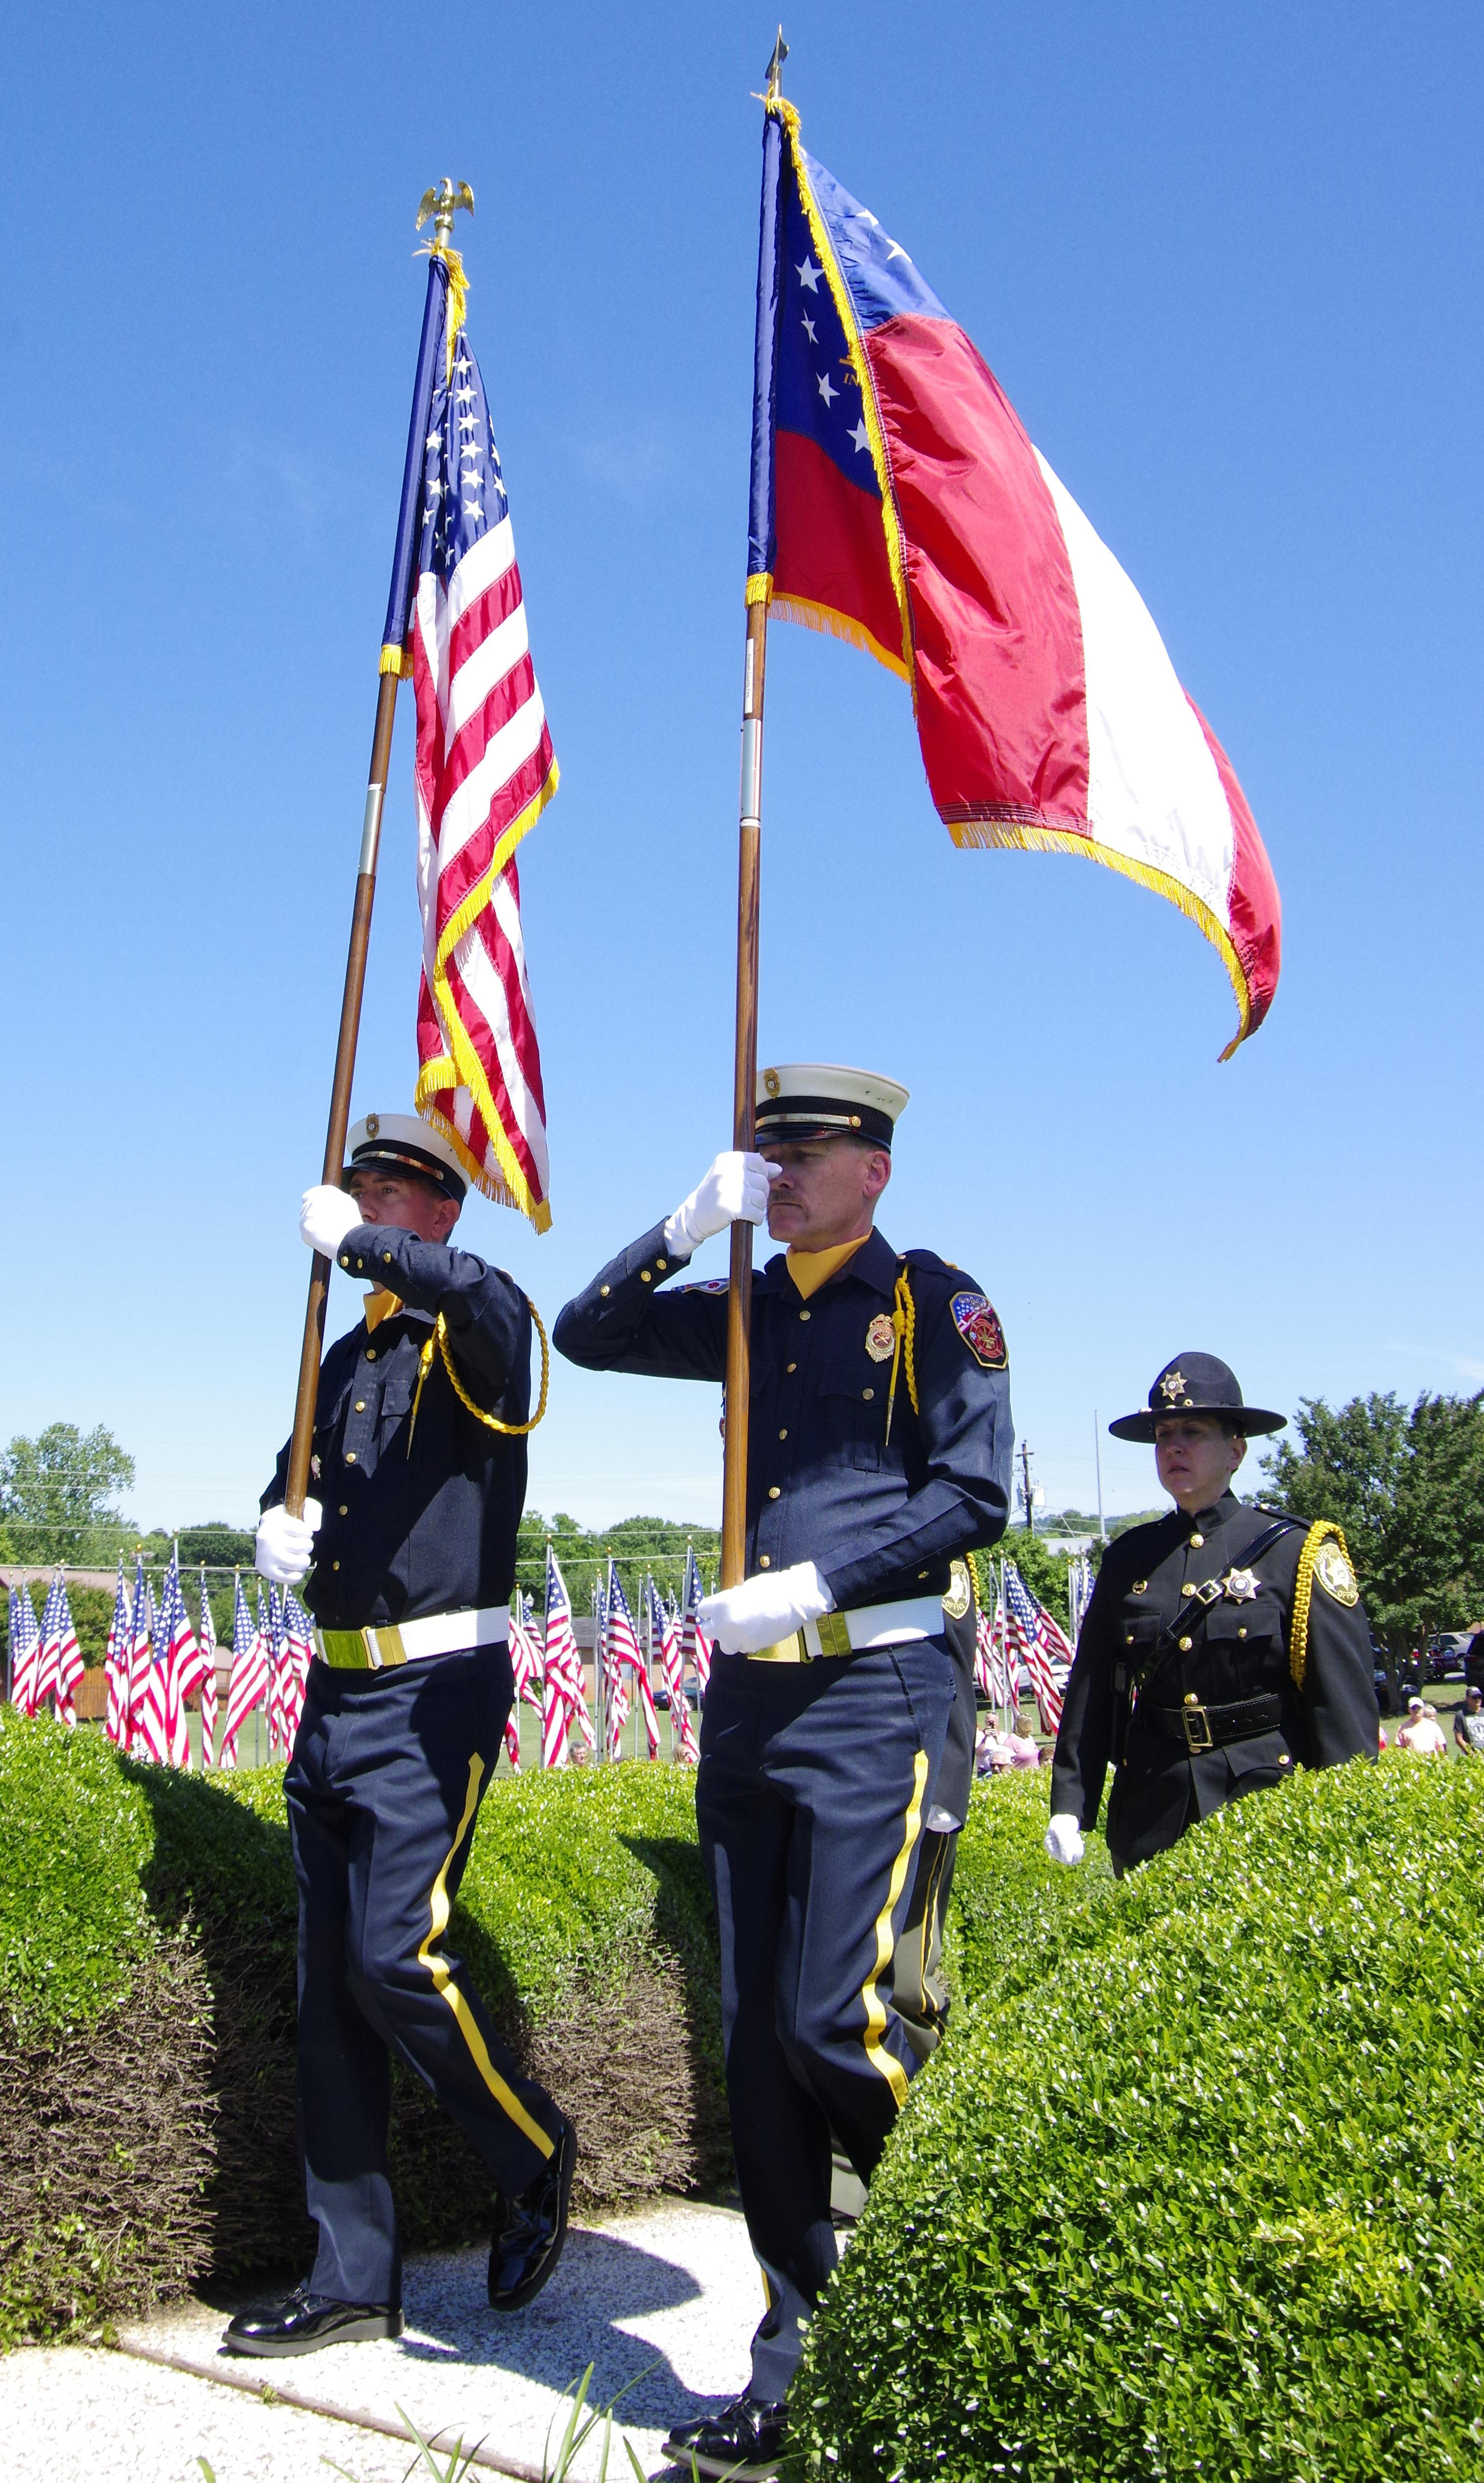 The color guard presents the flags